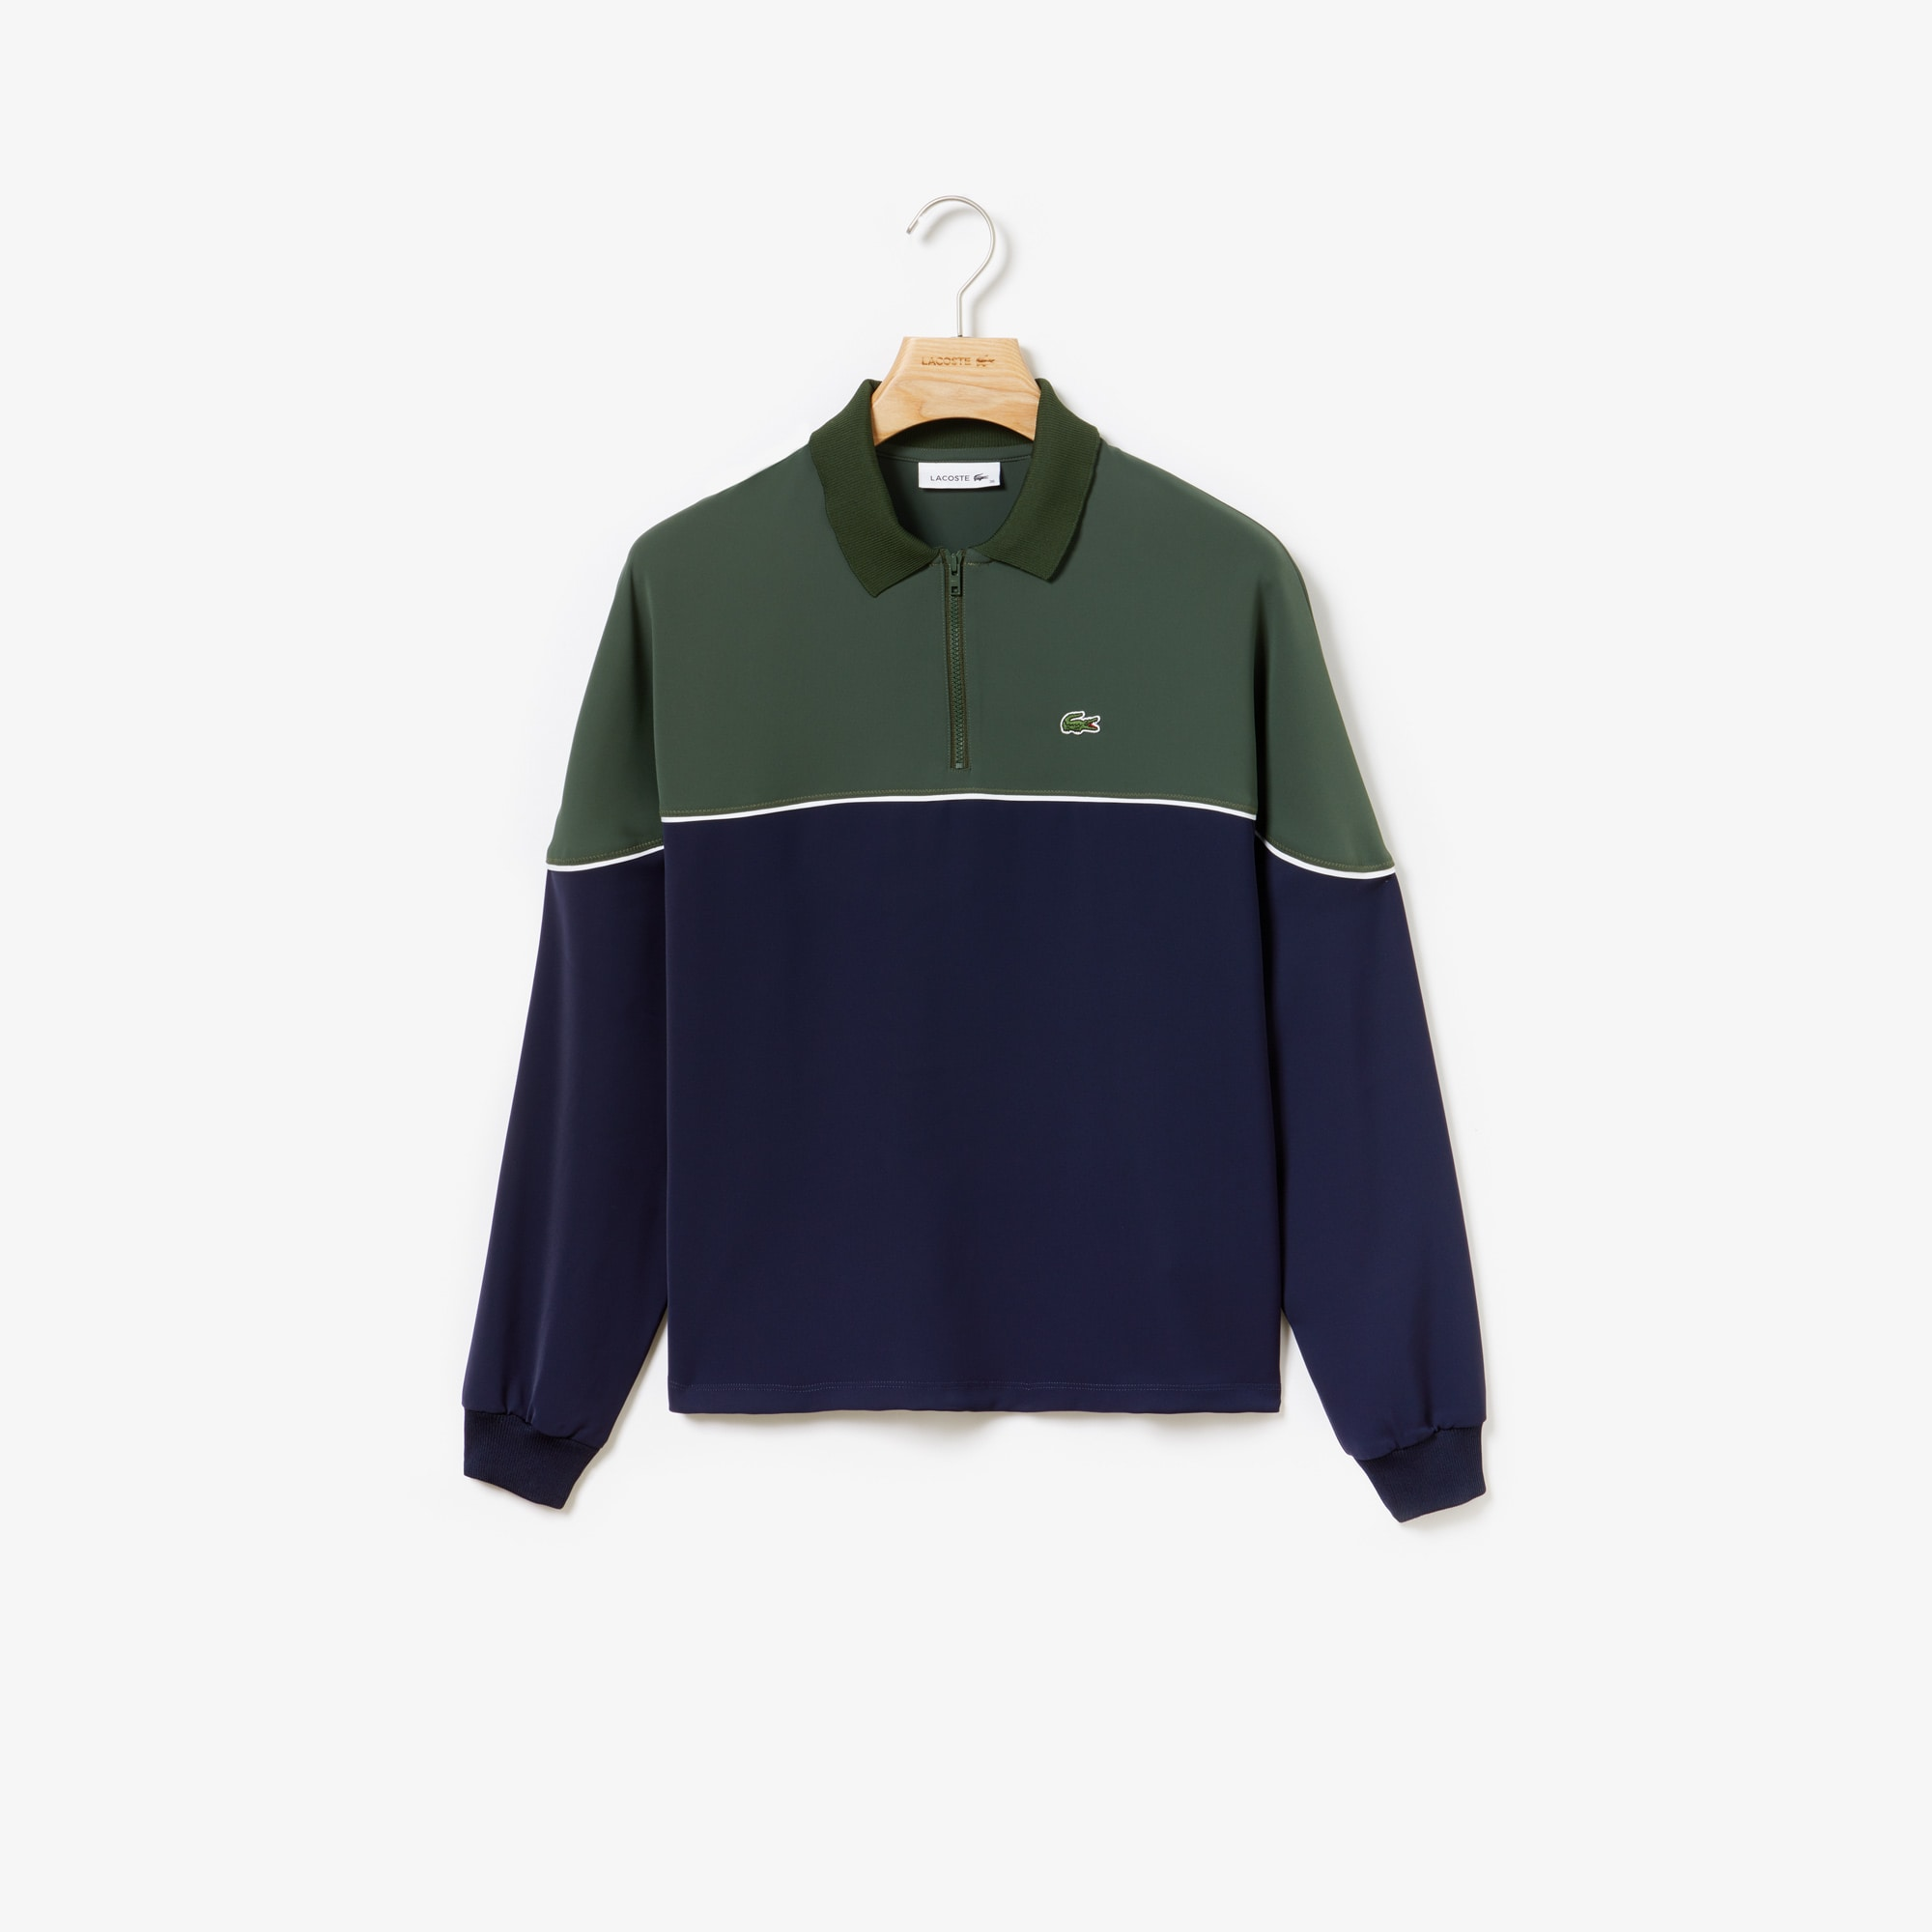 라코스테 Lacoste Womens Relaxed Fit Colorblock Polo,Khaki Green / Navy Blue / White